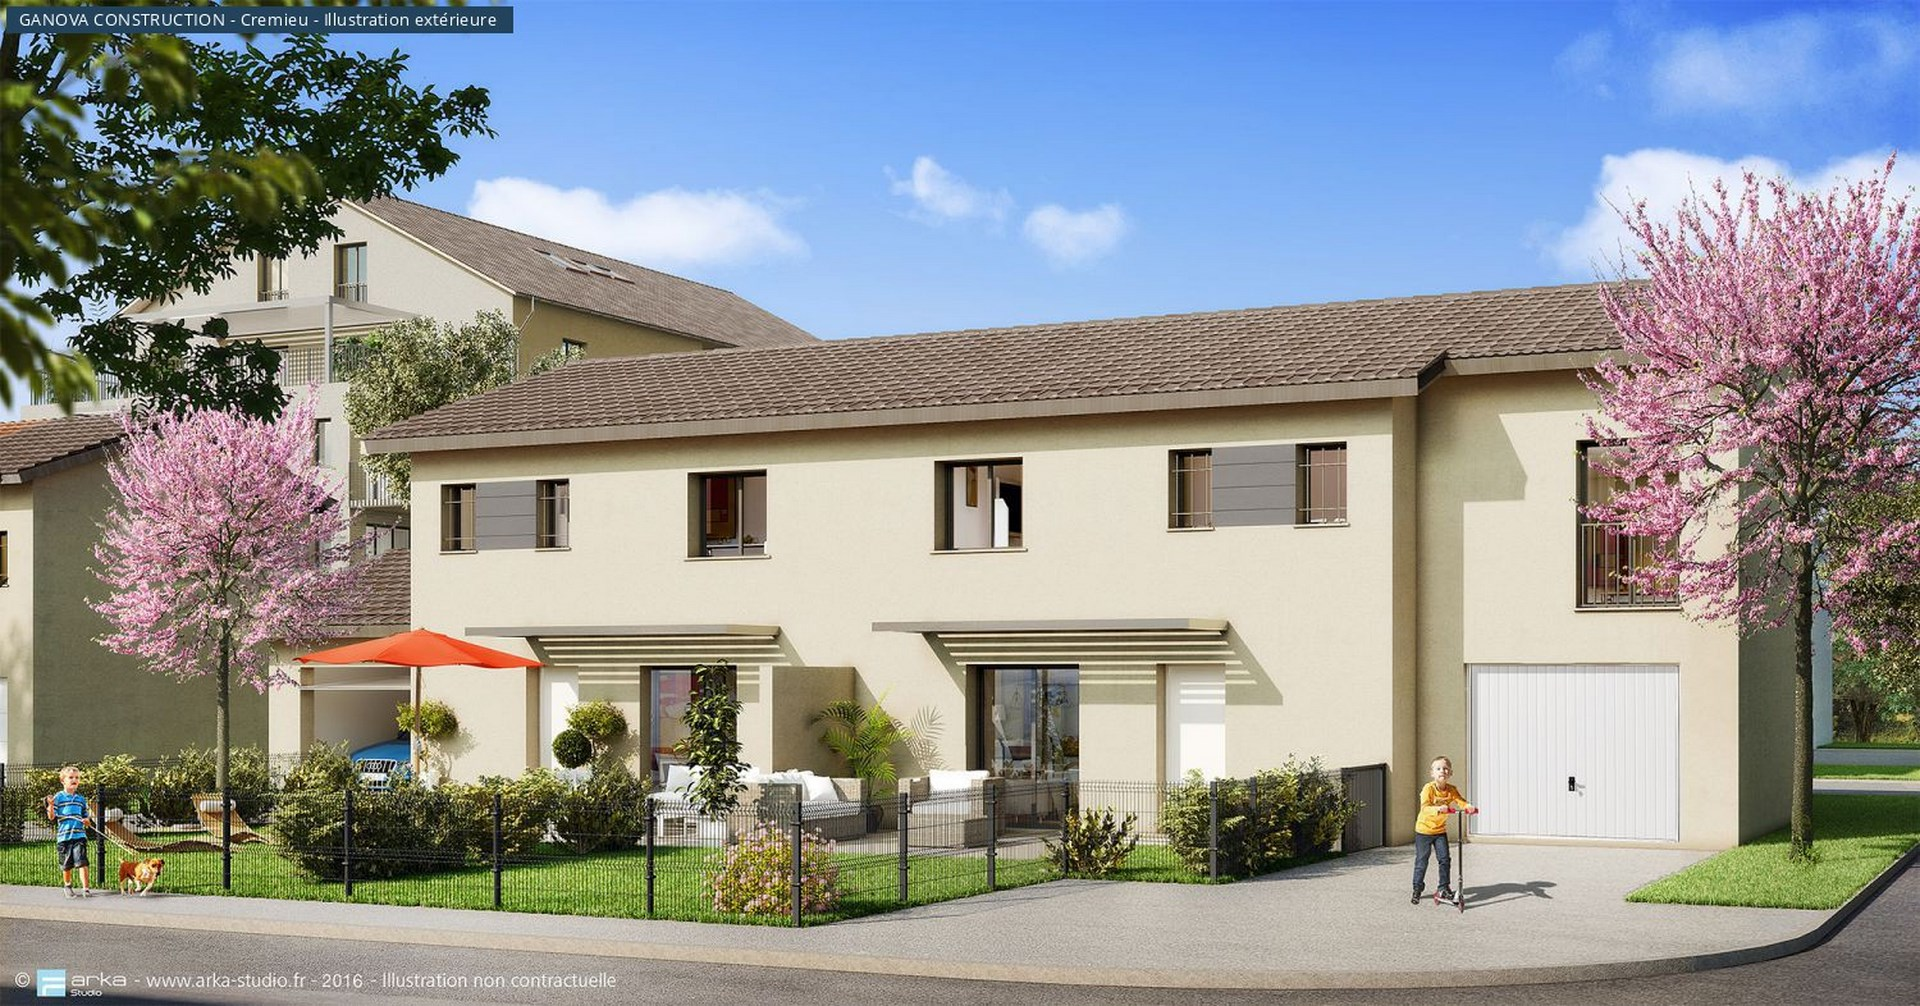 Prix construction maison contemporaine m2 menuiserie for Prix maison contemporaine 150 m2